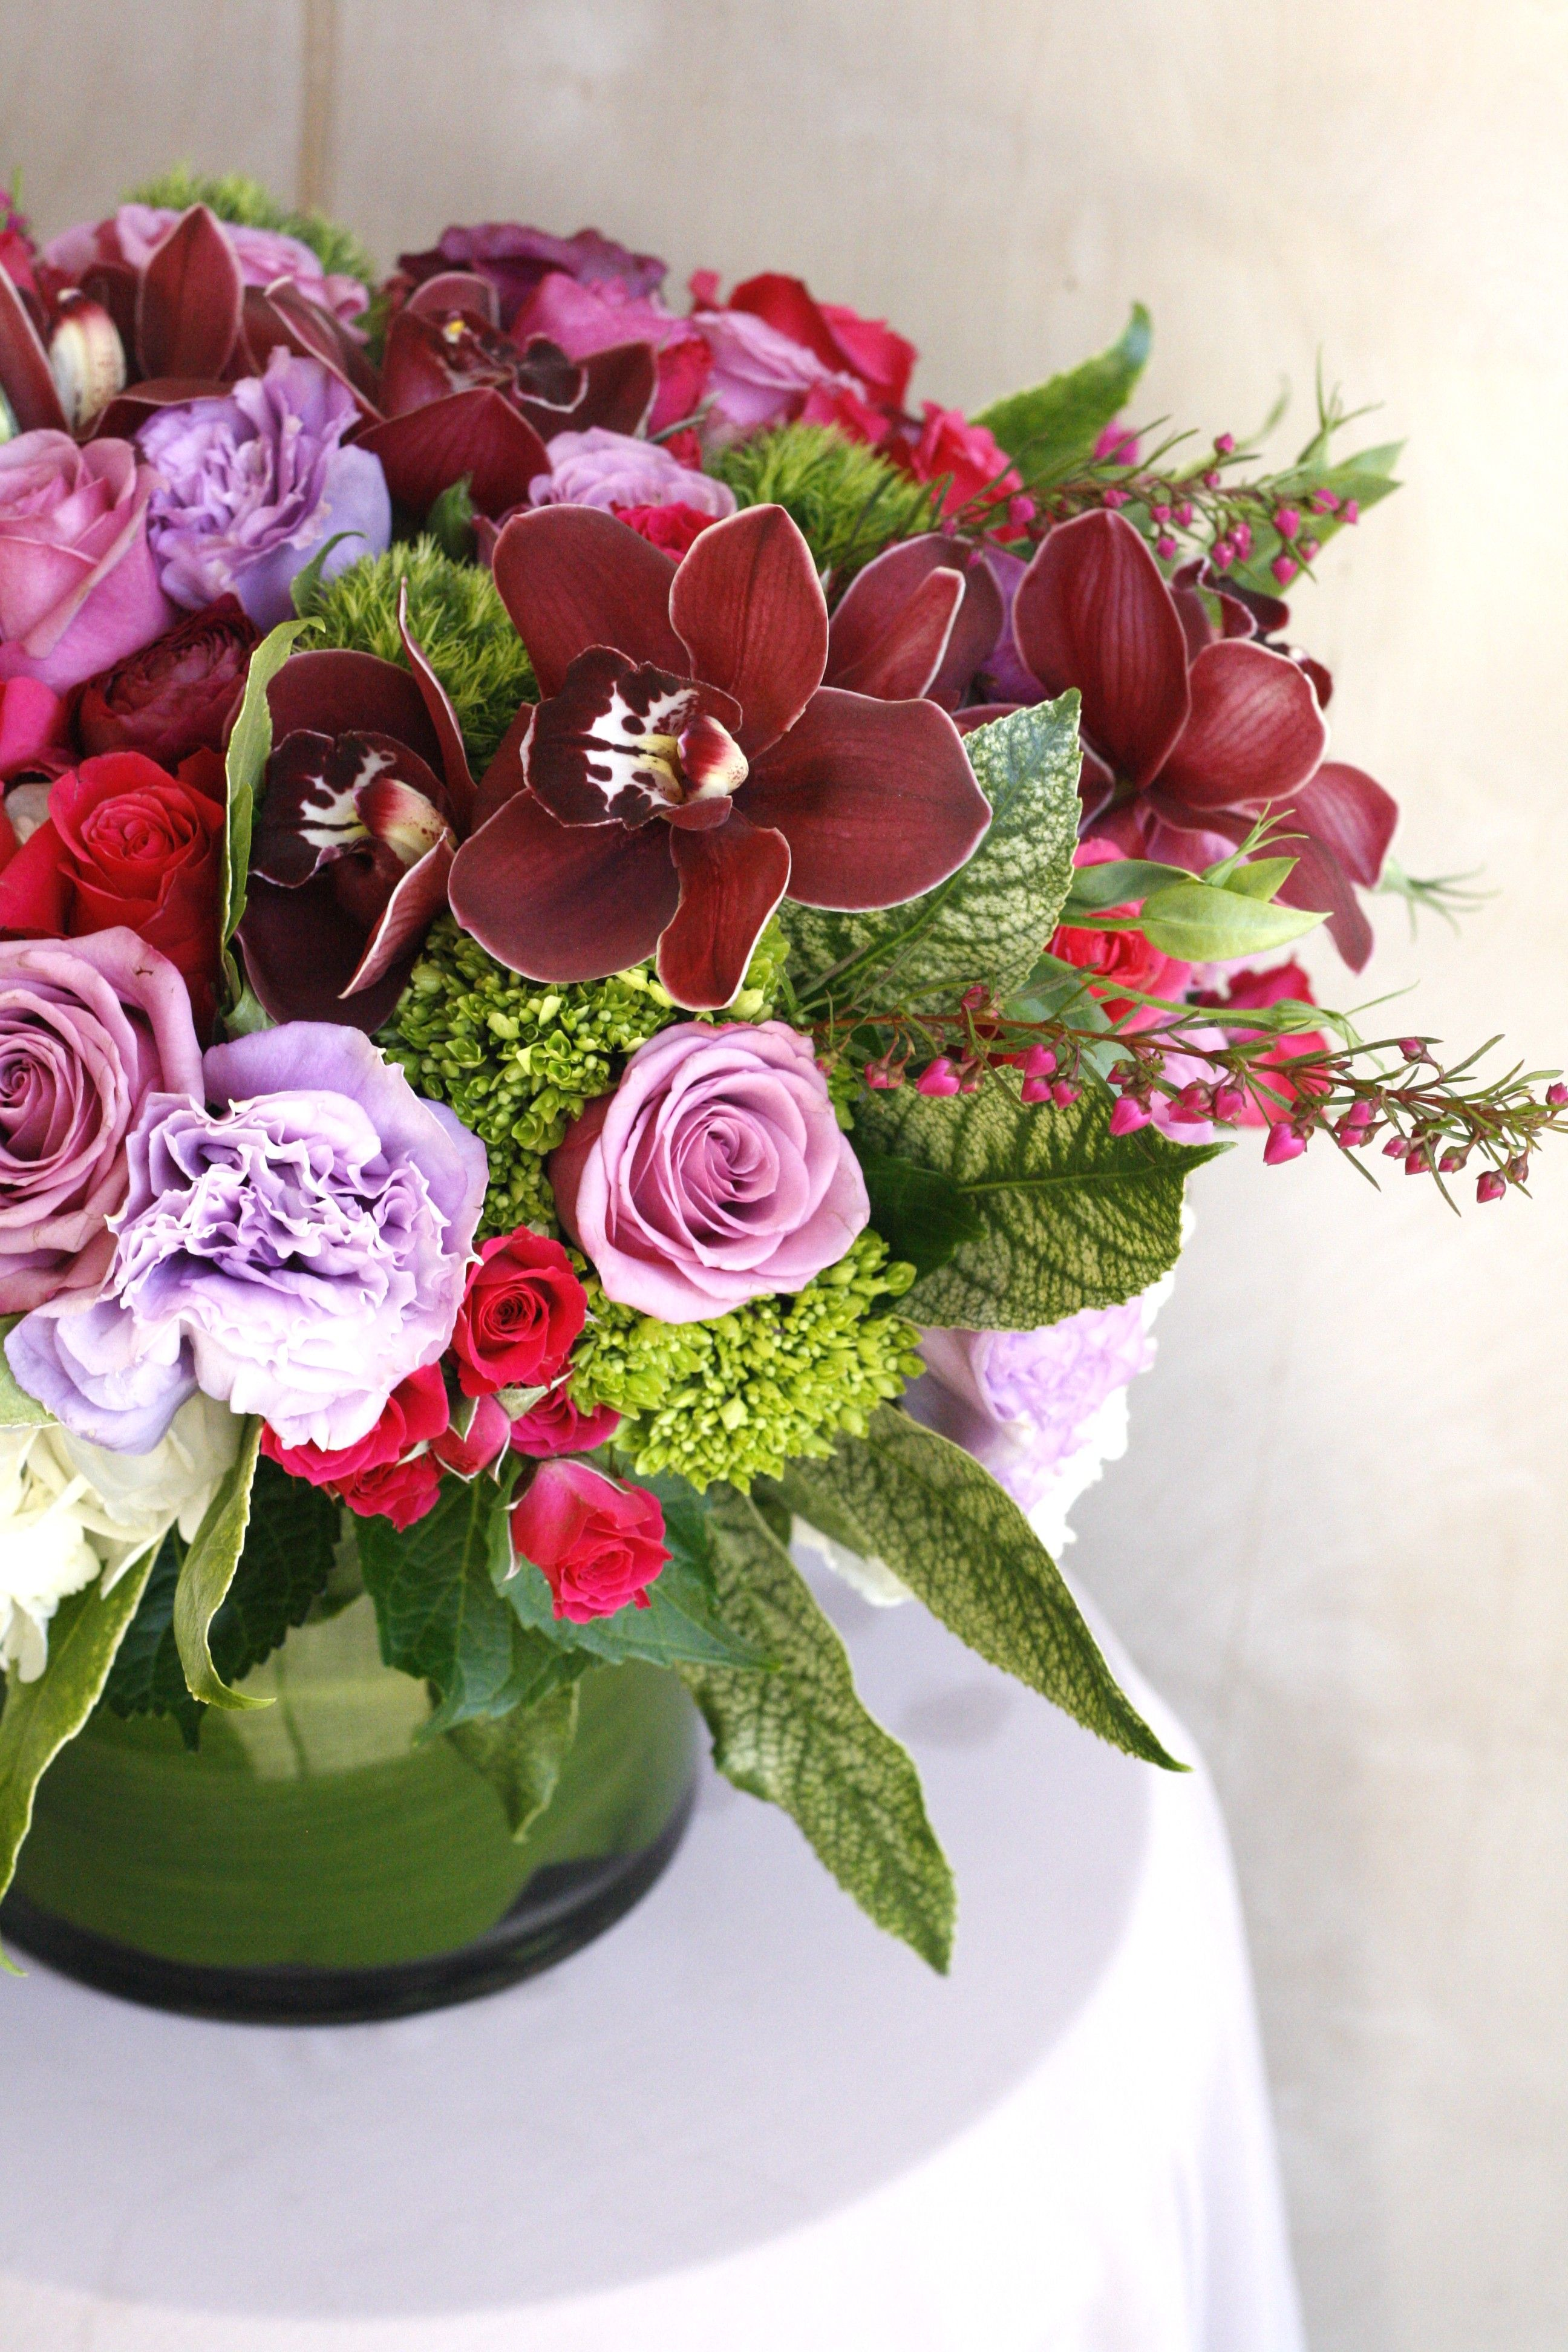 Order Florals for every occasion throughout the year